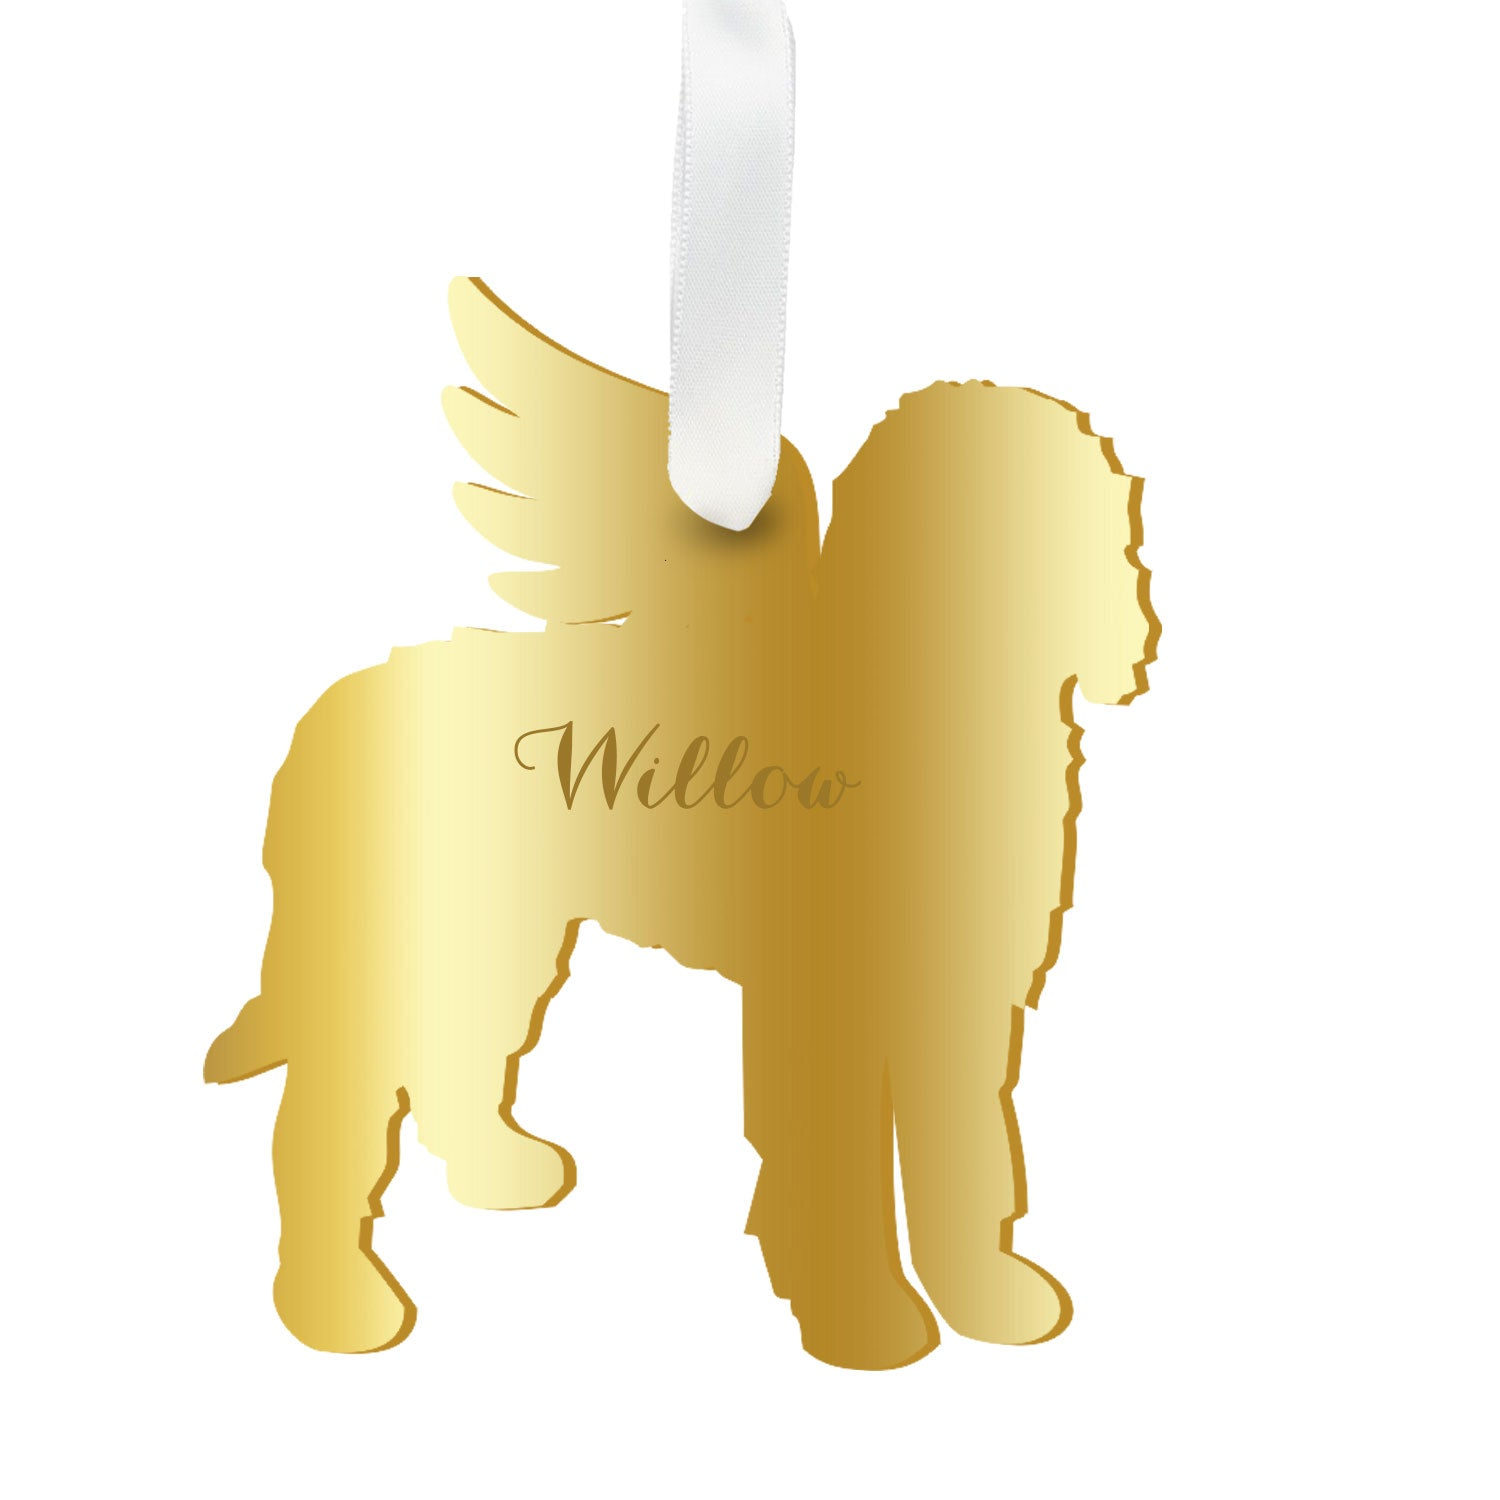 Moon and Lola - Personalized Angel Goldendoodle Ornament with wings in gold